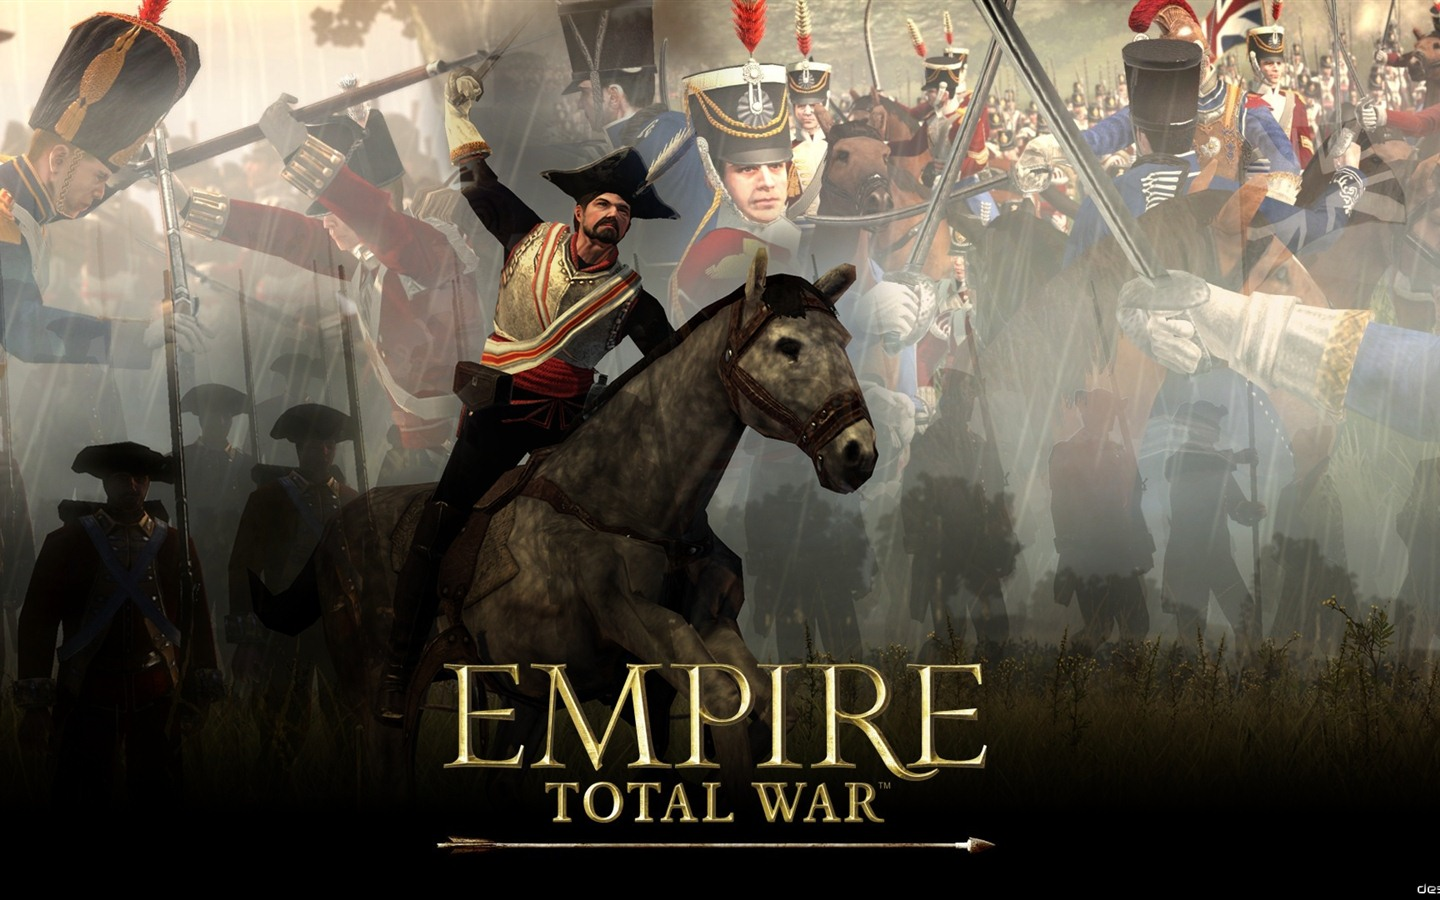 empire total war wallpapers 67 wallpapers hd wallpapers. Black Bedroom Furniture Sets. Home Design Ideas